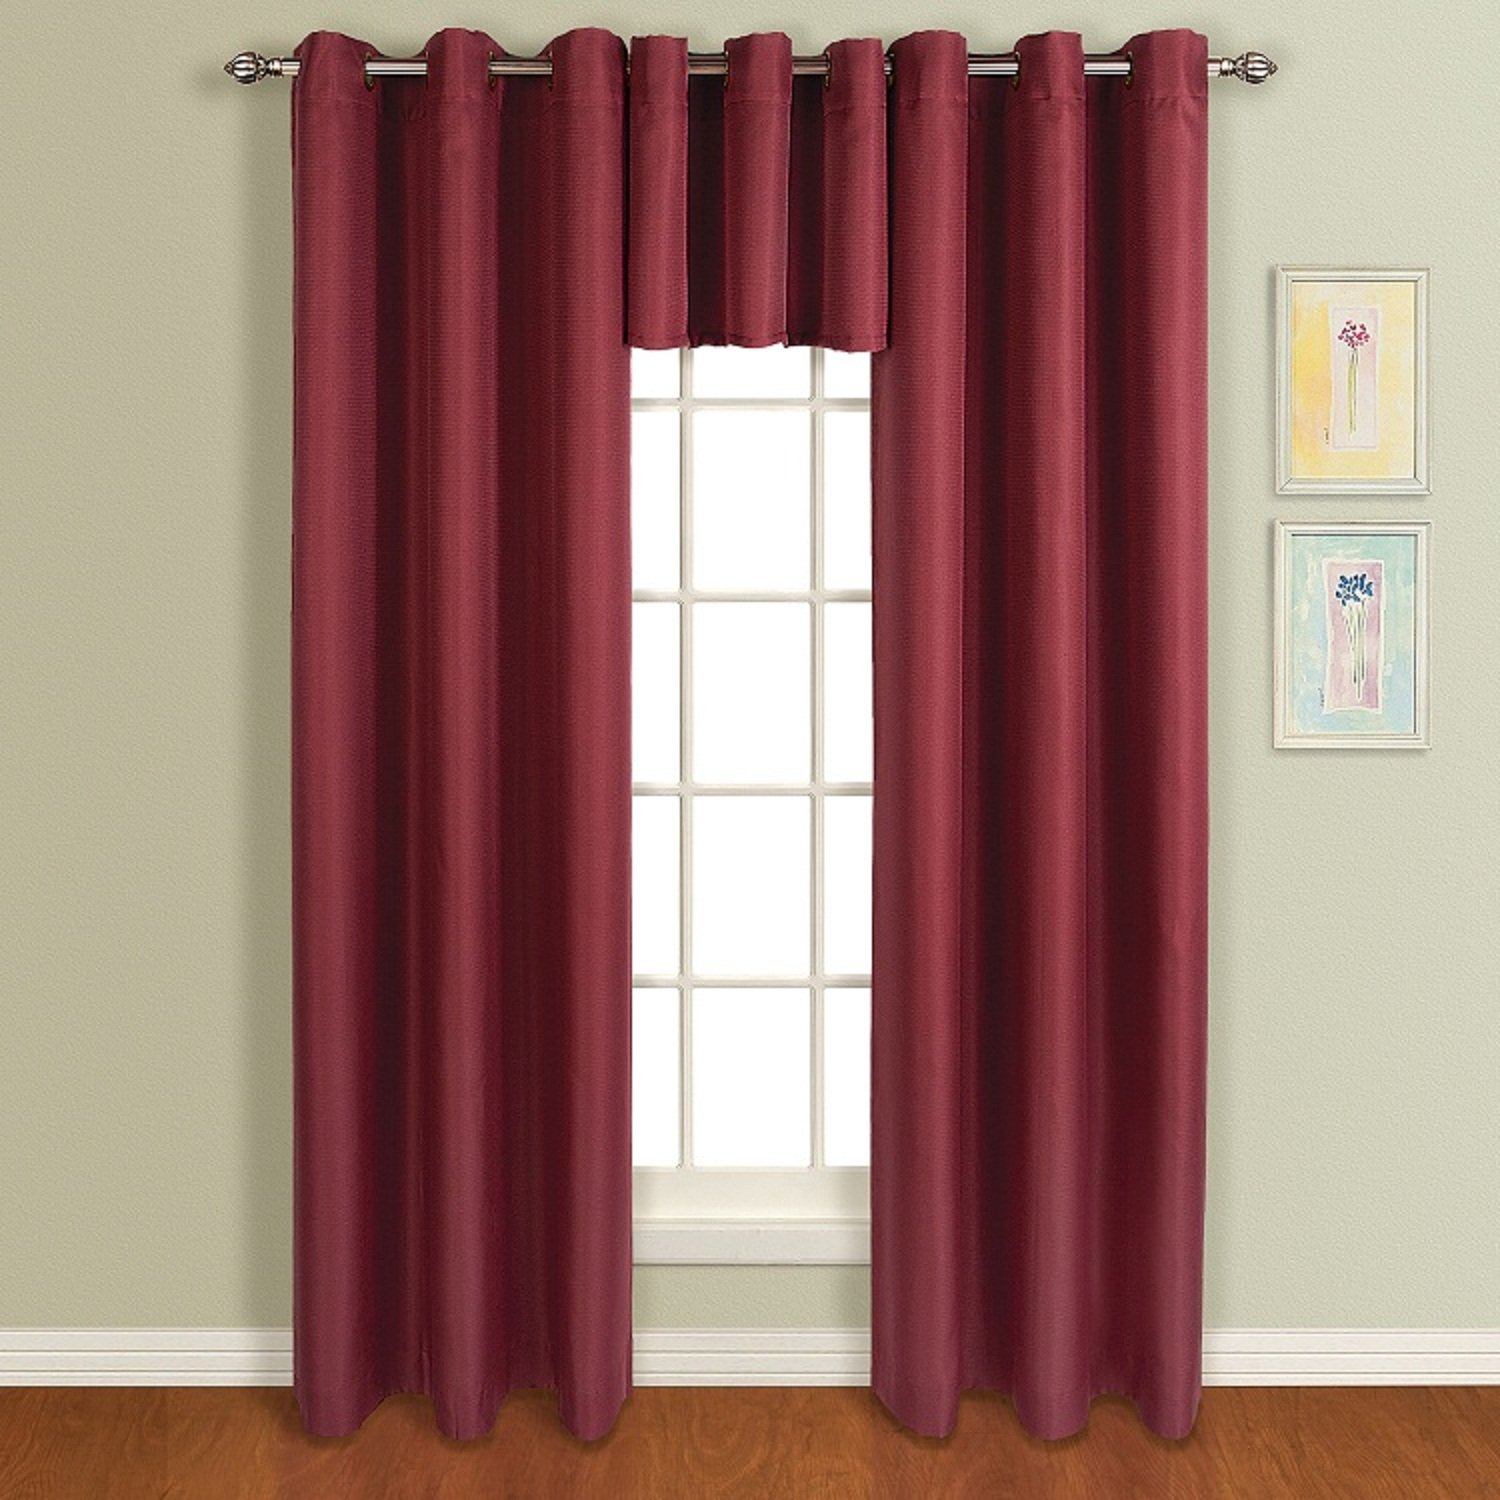 Amazon.com: United Curtain Mansfield Woven Grommet Valance, 50 by ...